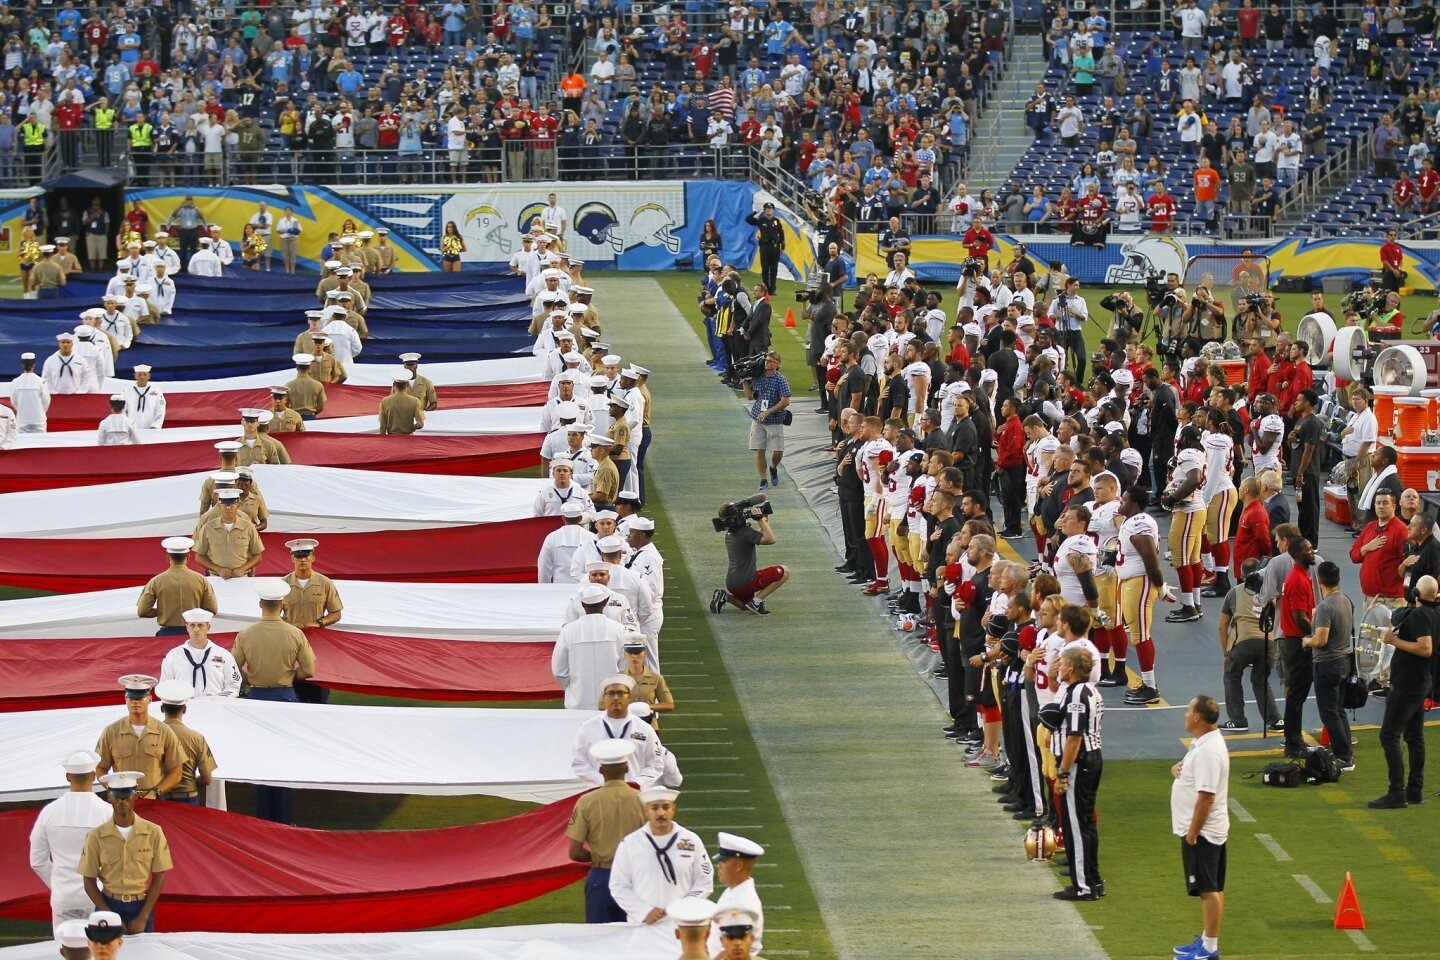 Chargers vs 49ers 9/1/16